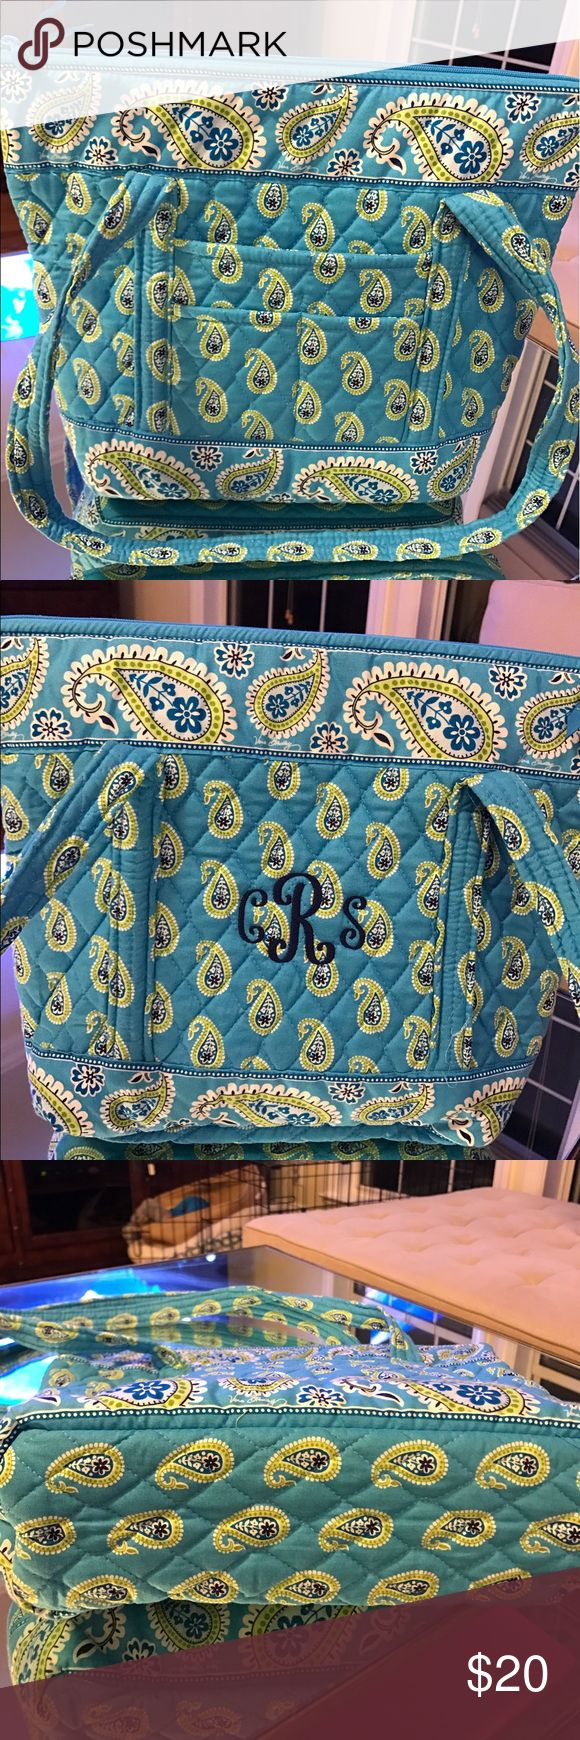 Vera Bradley Tote Bag Bermuda Blue Vera Bradley Tote bag in Bermuda Blue. One side of the Tote bag has my monogram in navy thread. There's probably a way to remove this, or can be worn on the other side! Inside there are multiple pockets, as well as pockets on the outside. The strap is long enough to fit over your shoulder. Please feel free to contact with any questions! Bag is in like new condition other than the monogram. Zippered top to close. Vera Bradley Bags Totes